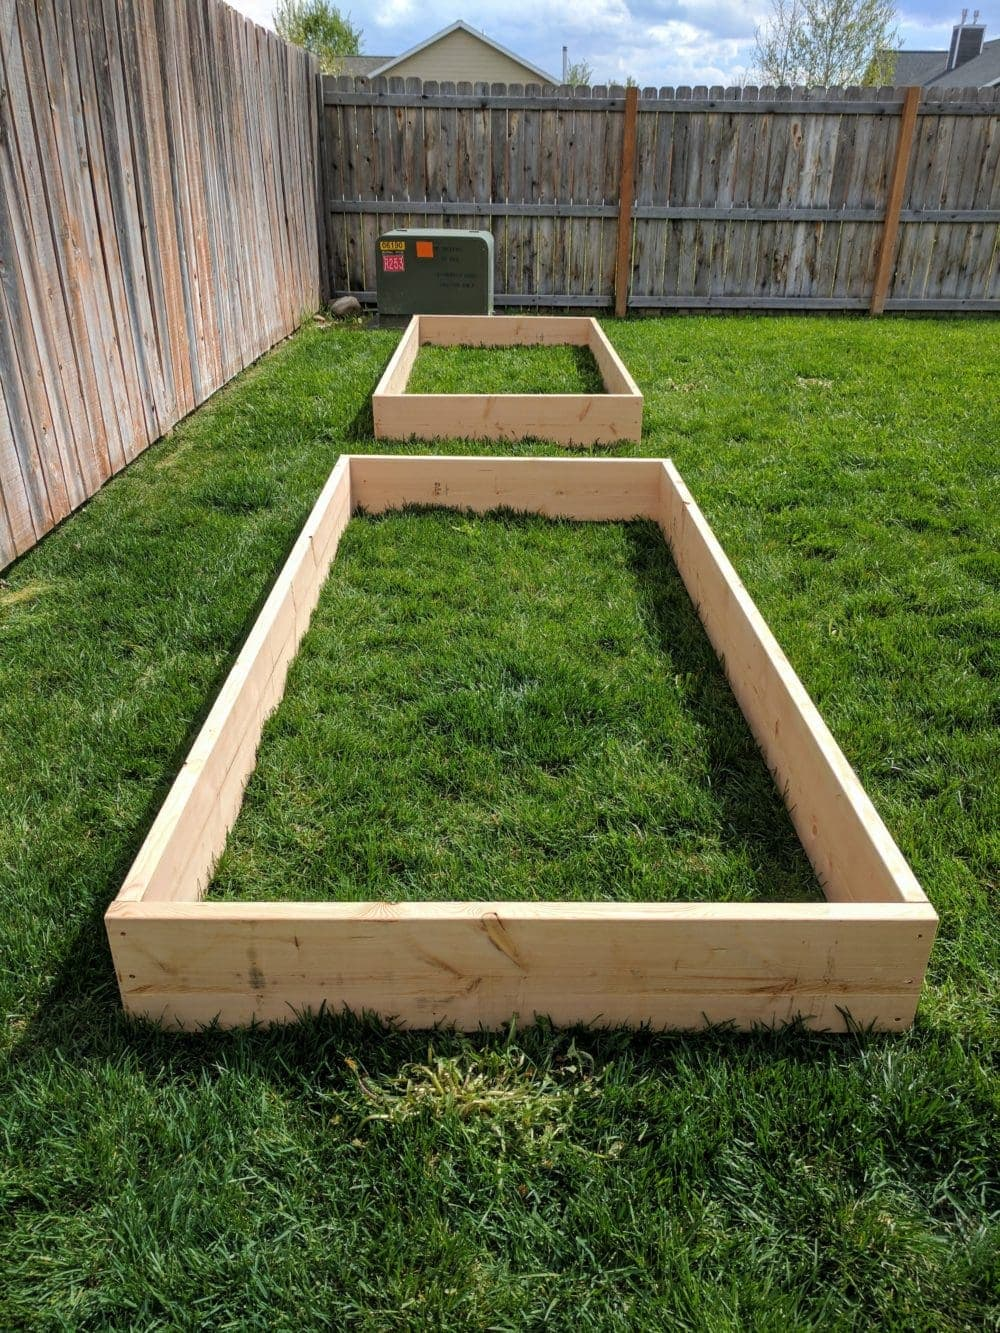 Two empty raised garden bed frames sitting in a grassy fenced yard